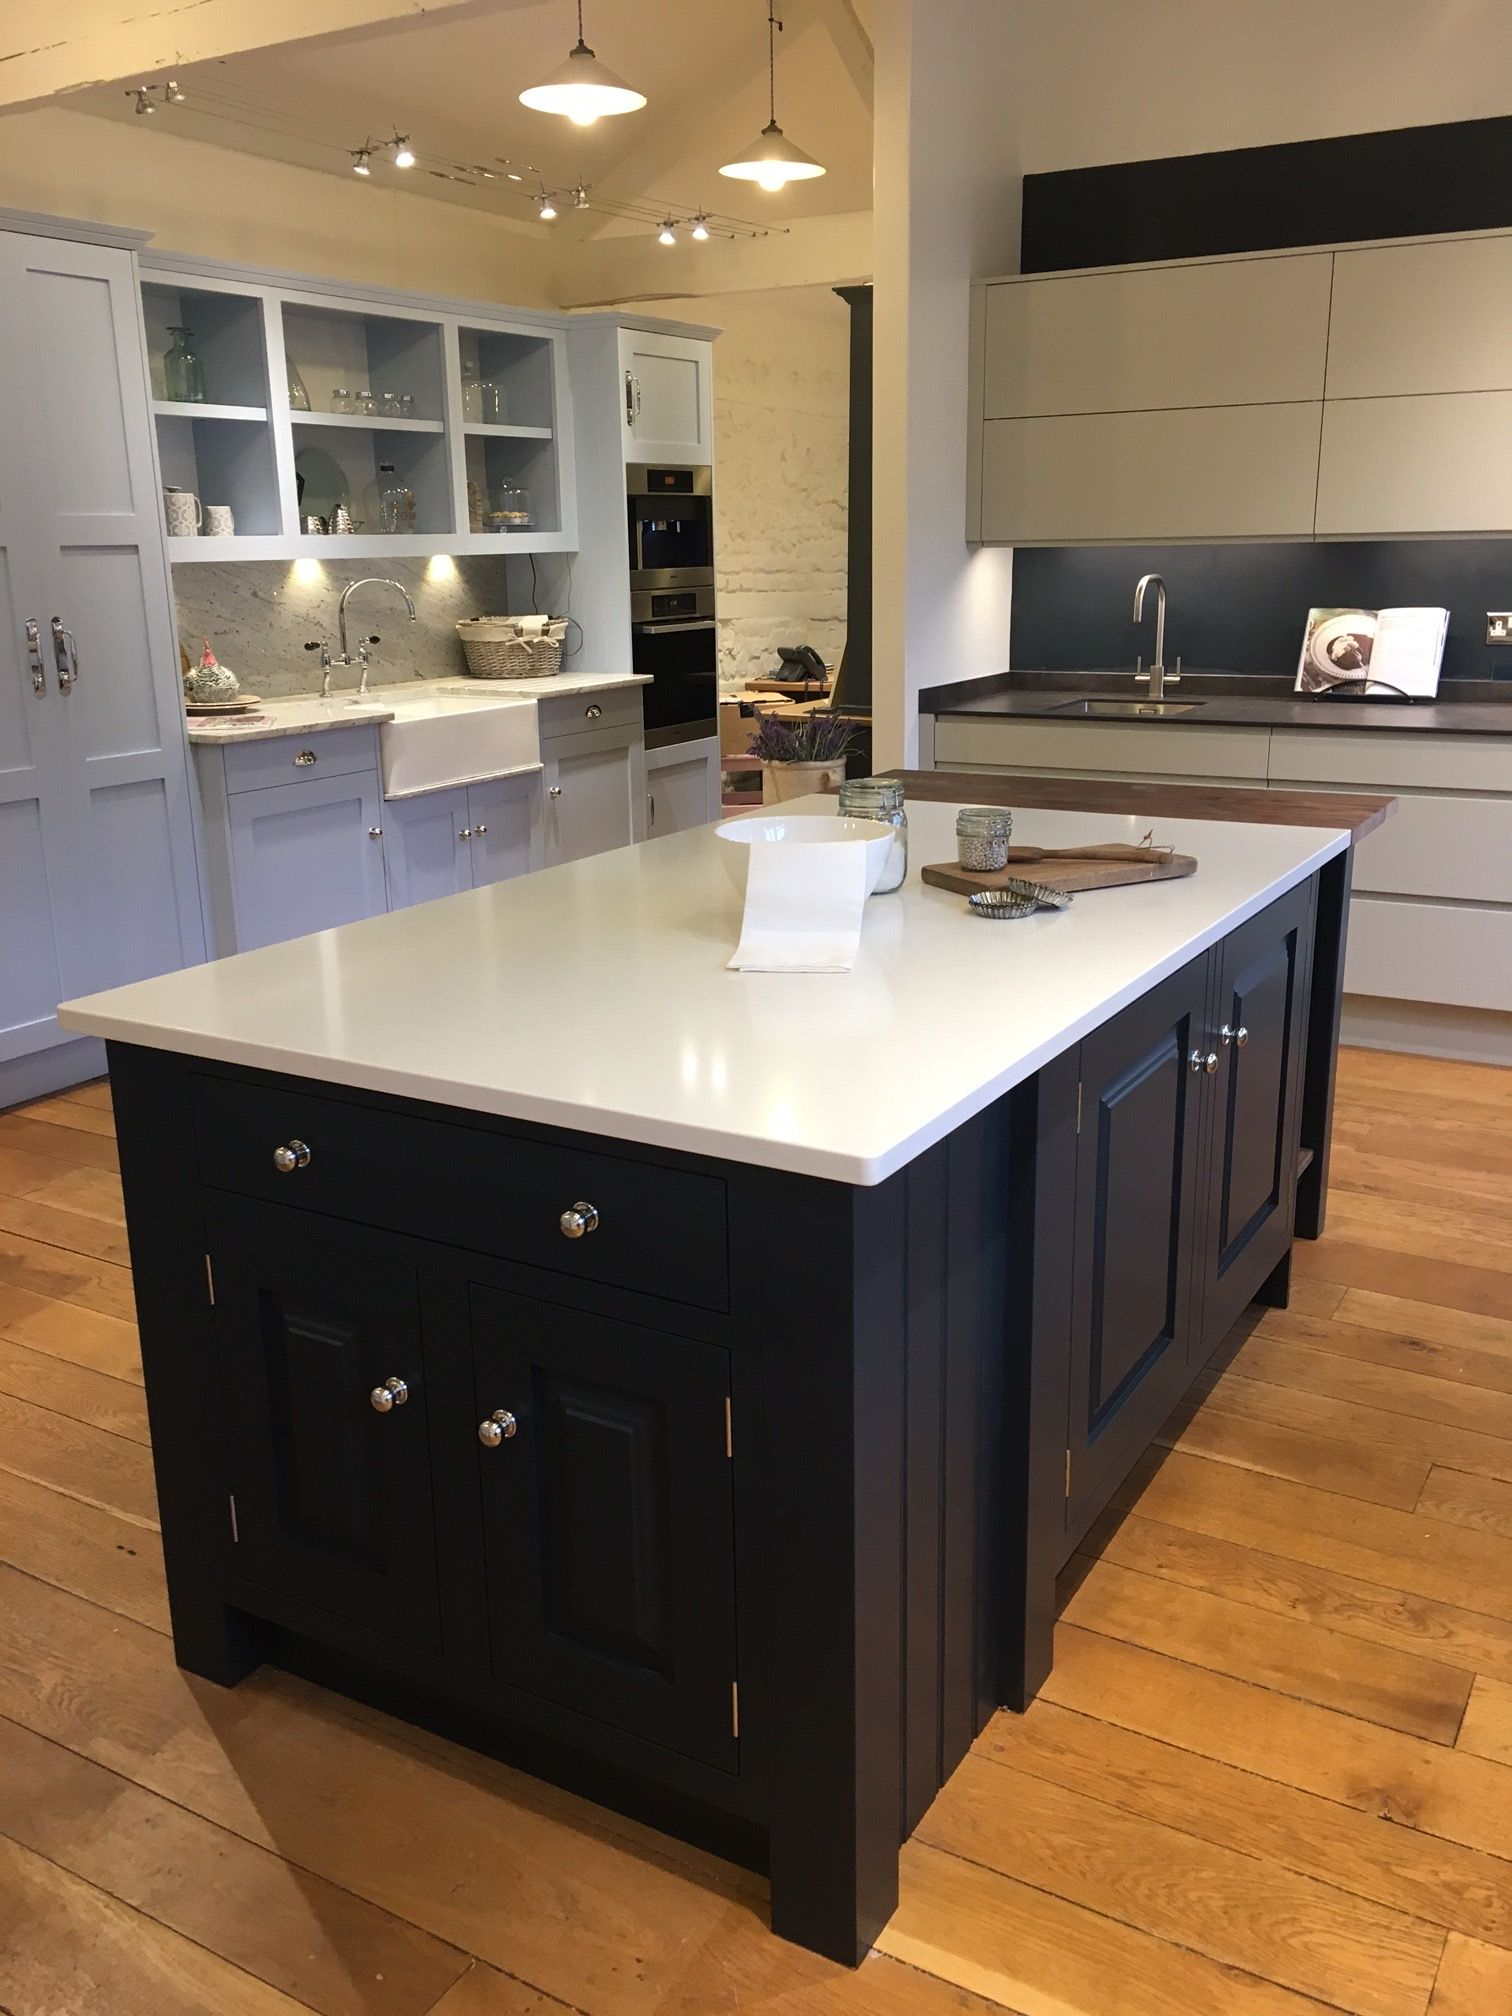 Kitchen Island John Lewis this beautiful kitchen island from john lewis of hungerford is a